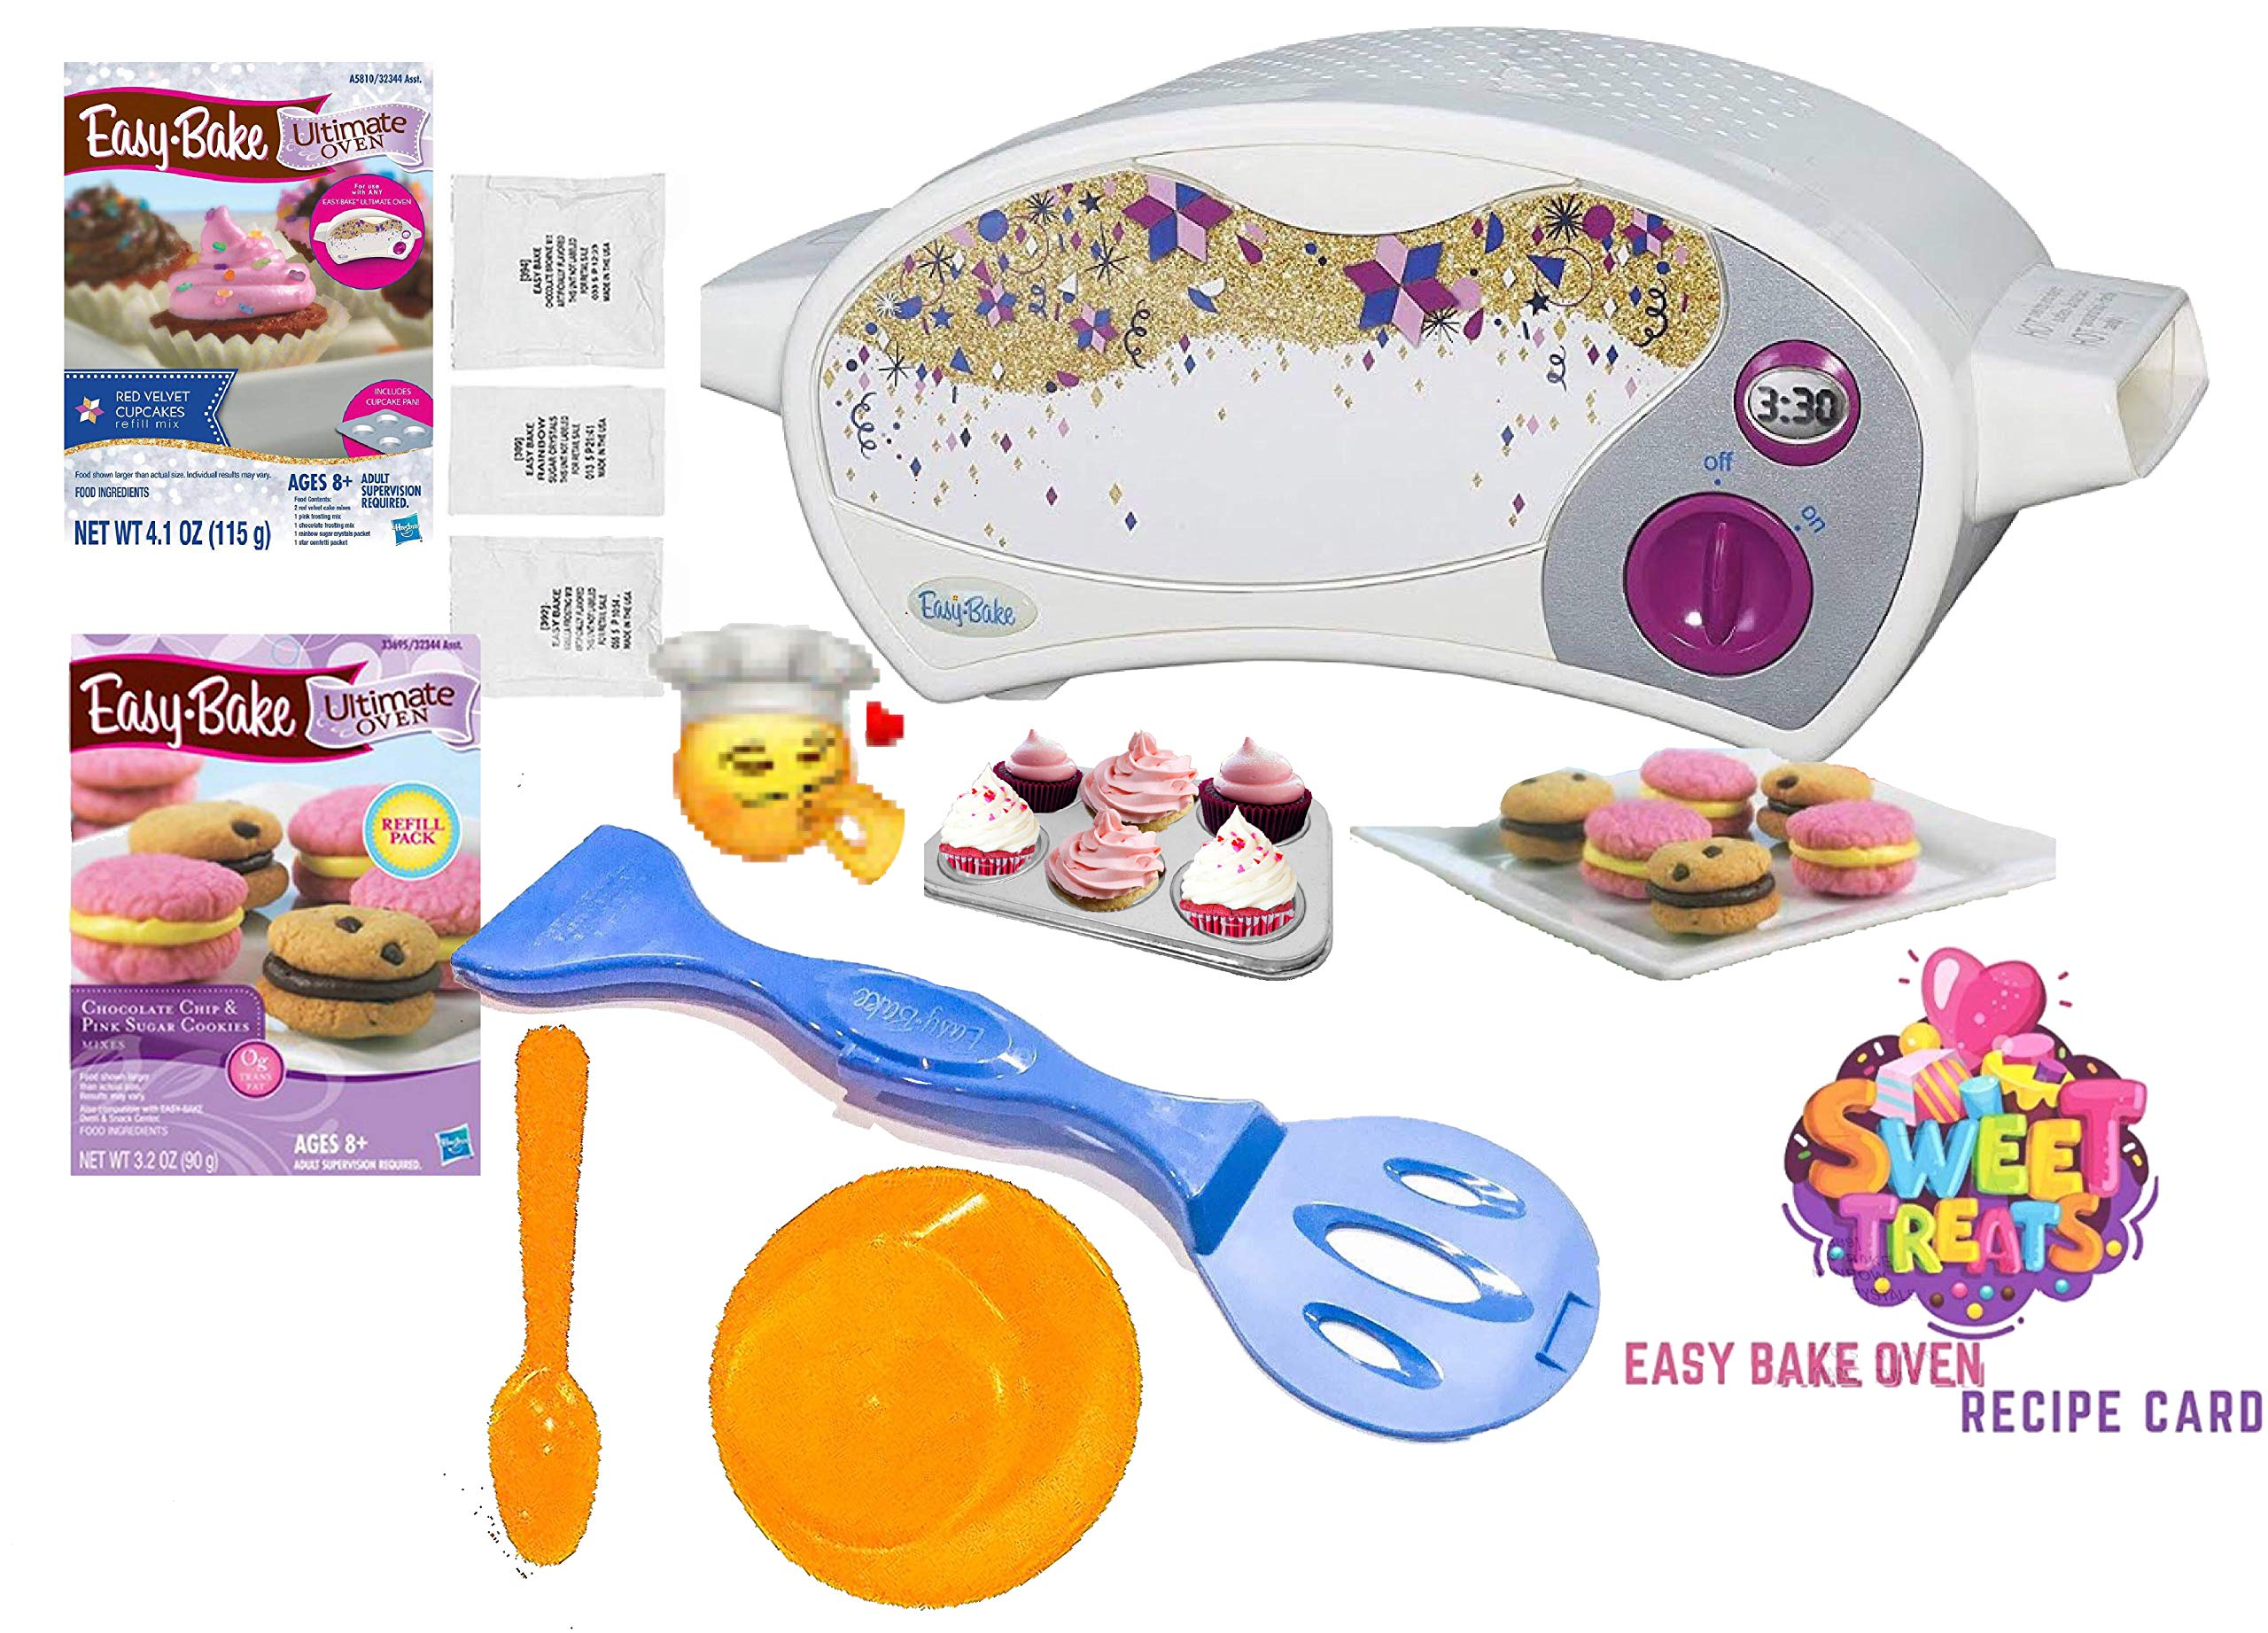 Party Lab 365 Easy Bake Ultimate Oven Baking Star Edition + 2 Oven Refill Mixes + 2 Sweet Treats Tasty Oven Recipes + Mixing Bowl and Spoon (5 Total Items) (Orange) by Party Lab 365